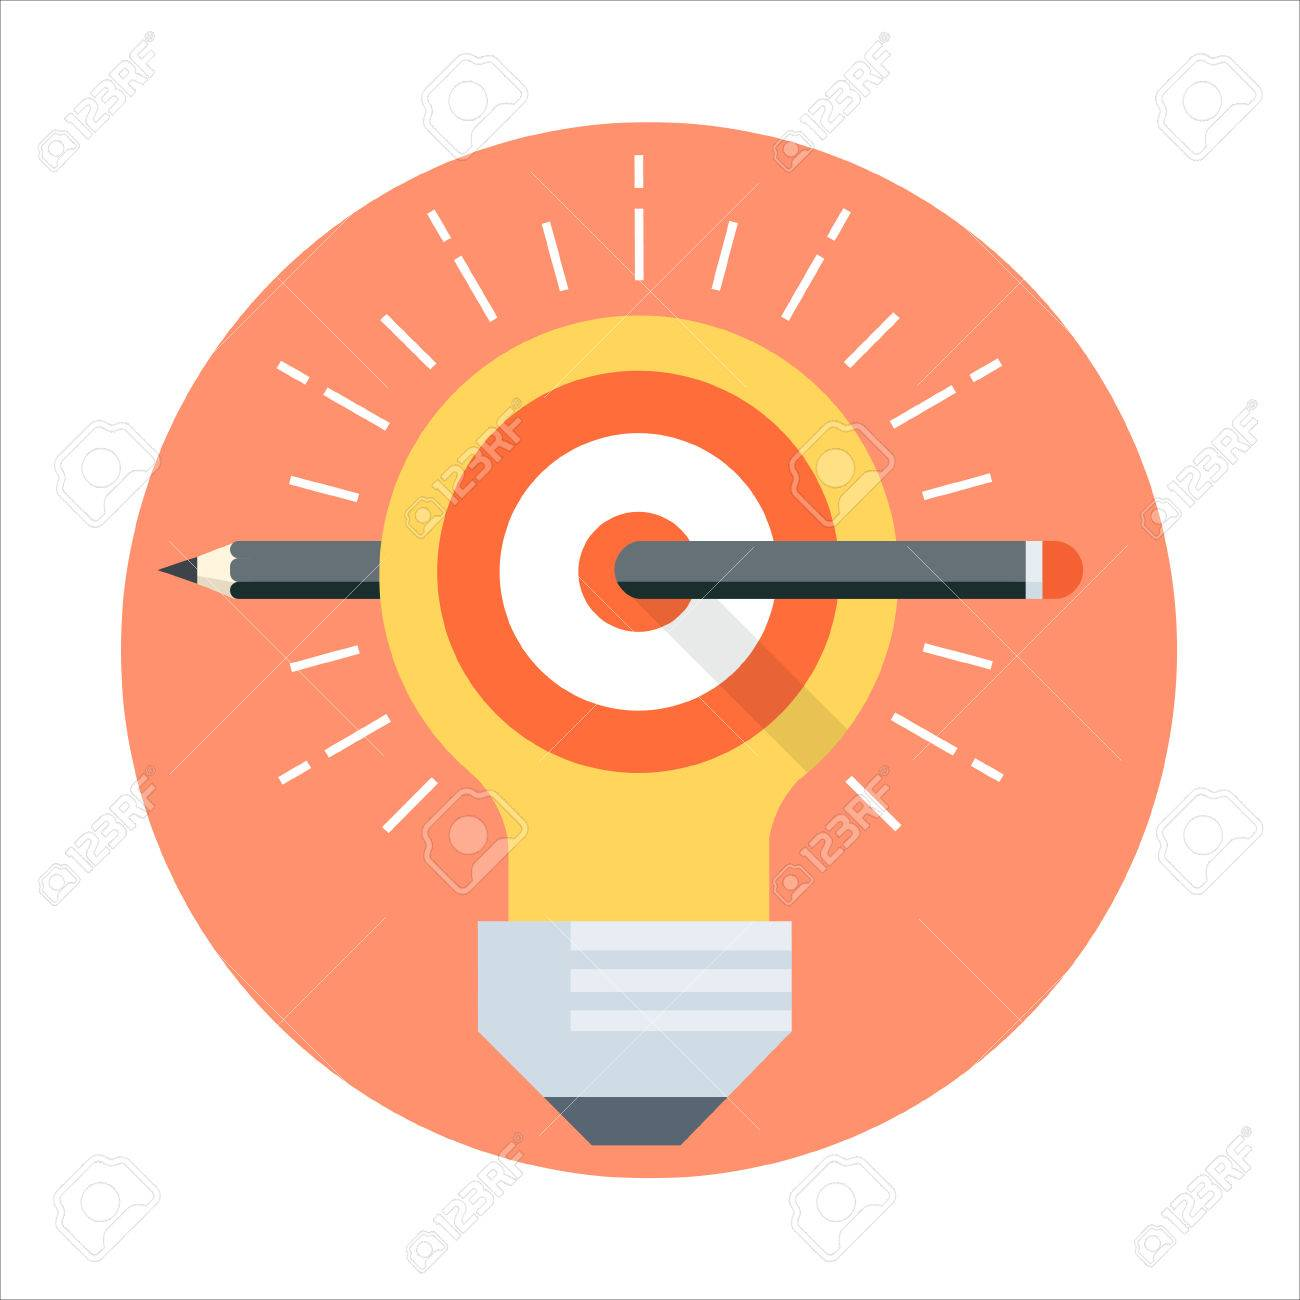 Define goal theme, flat style, colorful, vector icon for info graphics, websites, mobile and print media. - 55935924